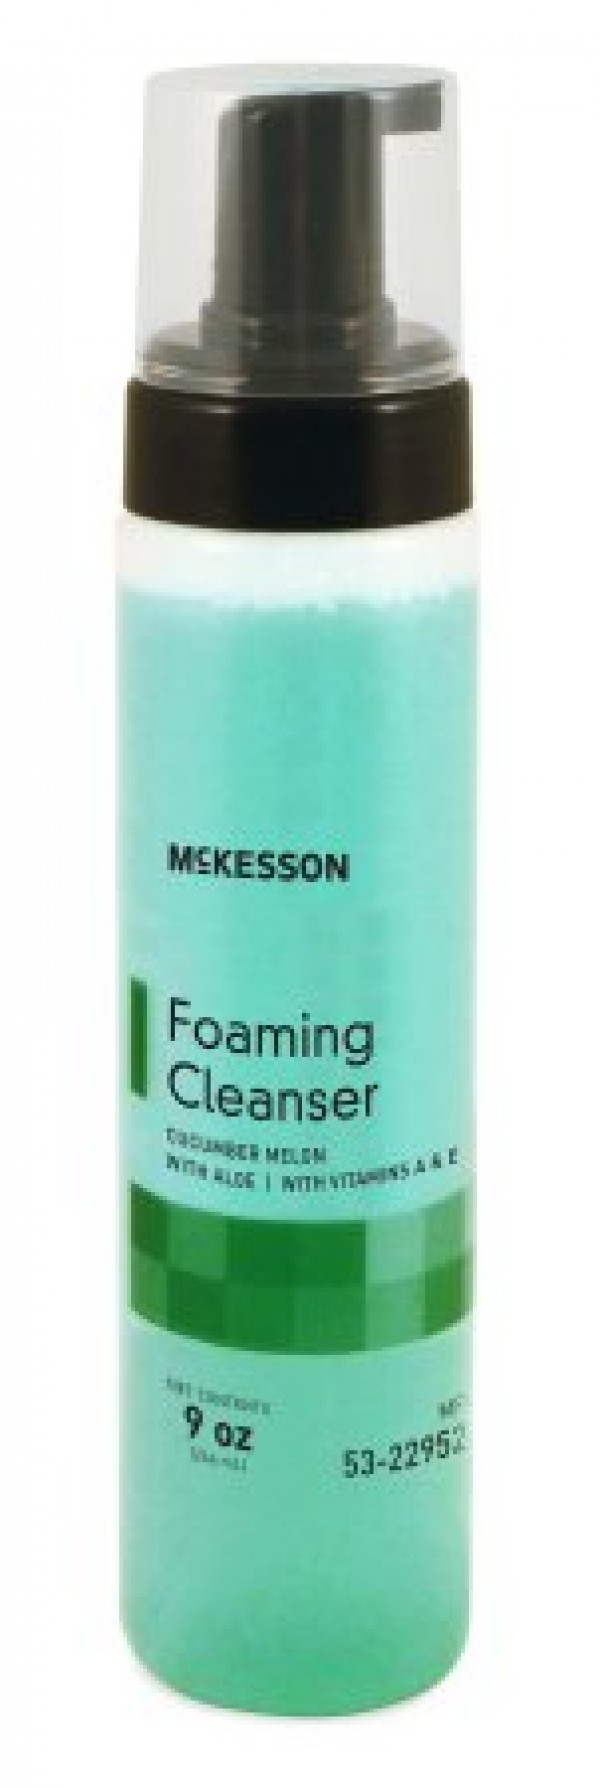 McKesson StyDry Perineal No Rinse Performance Foaming Cleanser